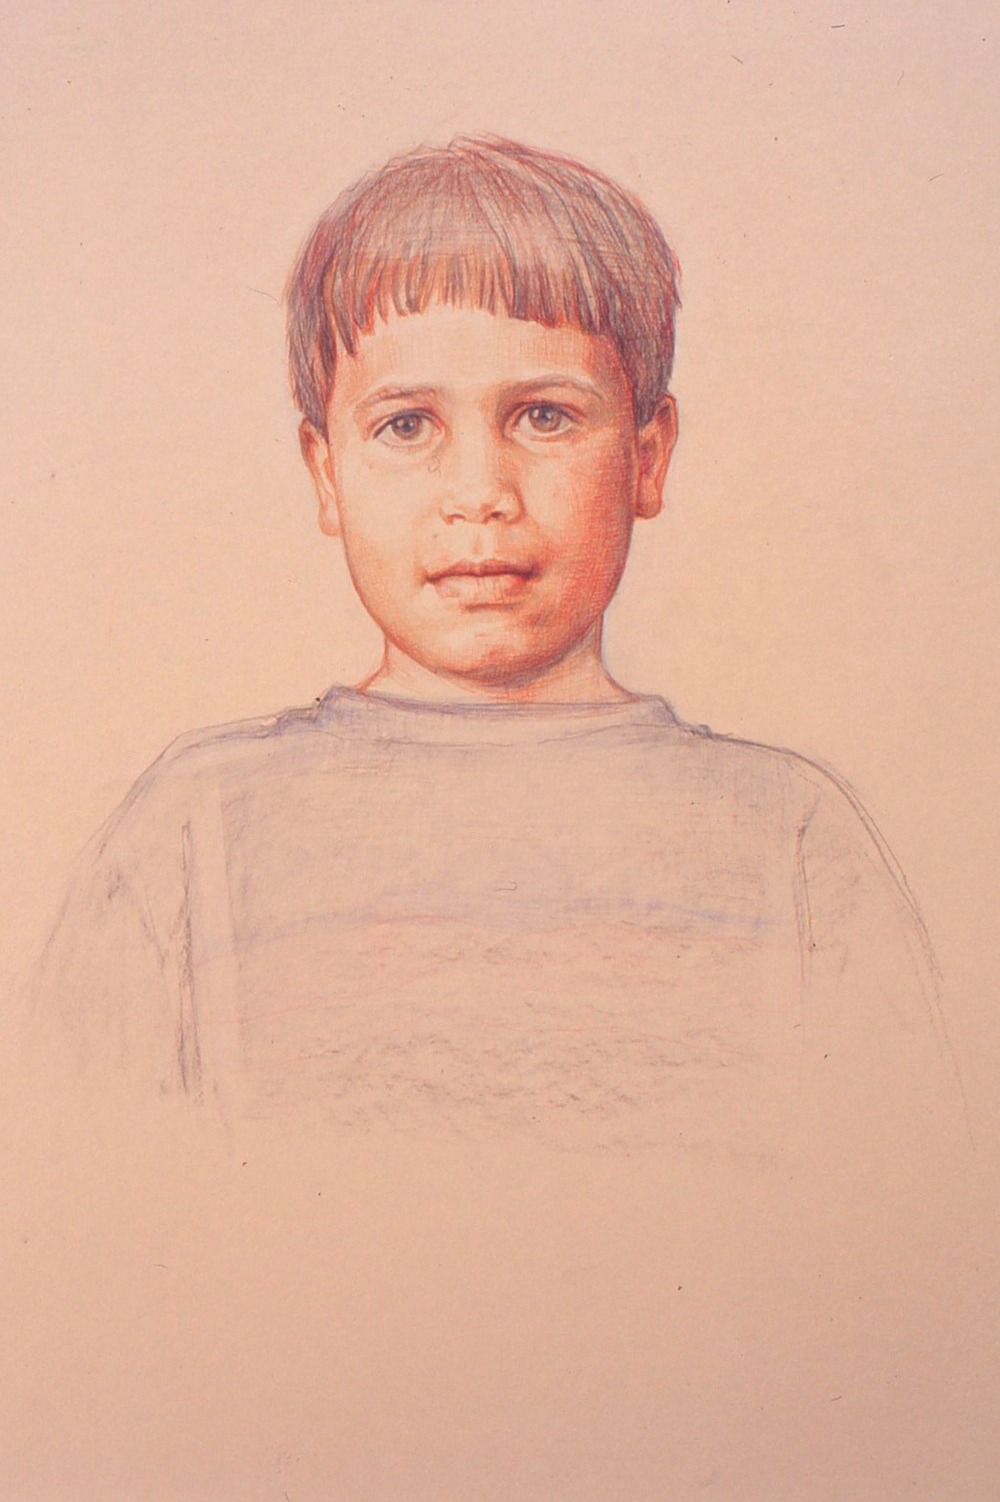 5df(0) - Portrait of Richard -color pencil, charcoal on toned paper, 30x18 in. 1992.jpg